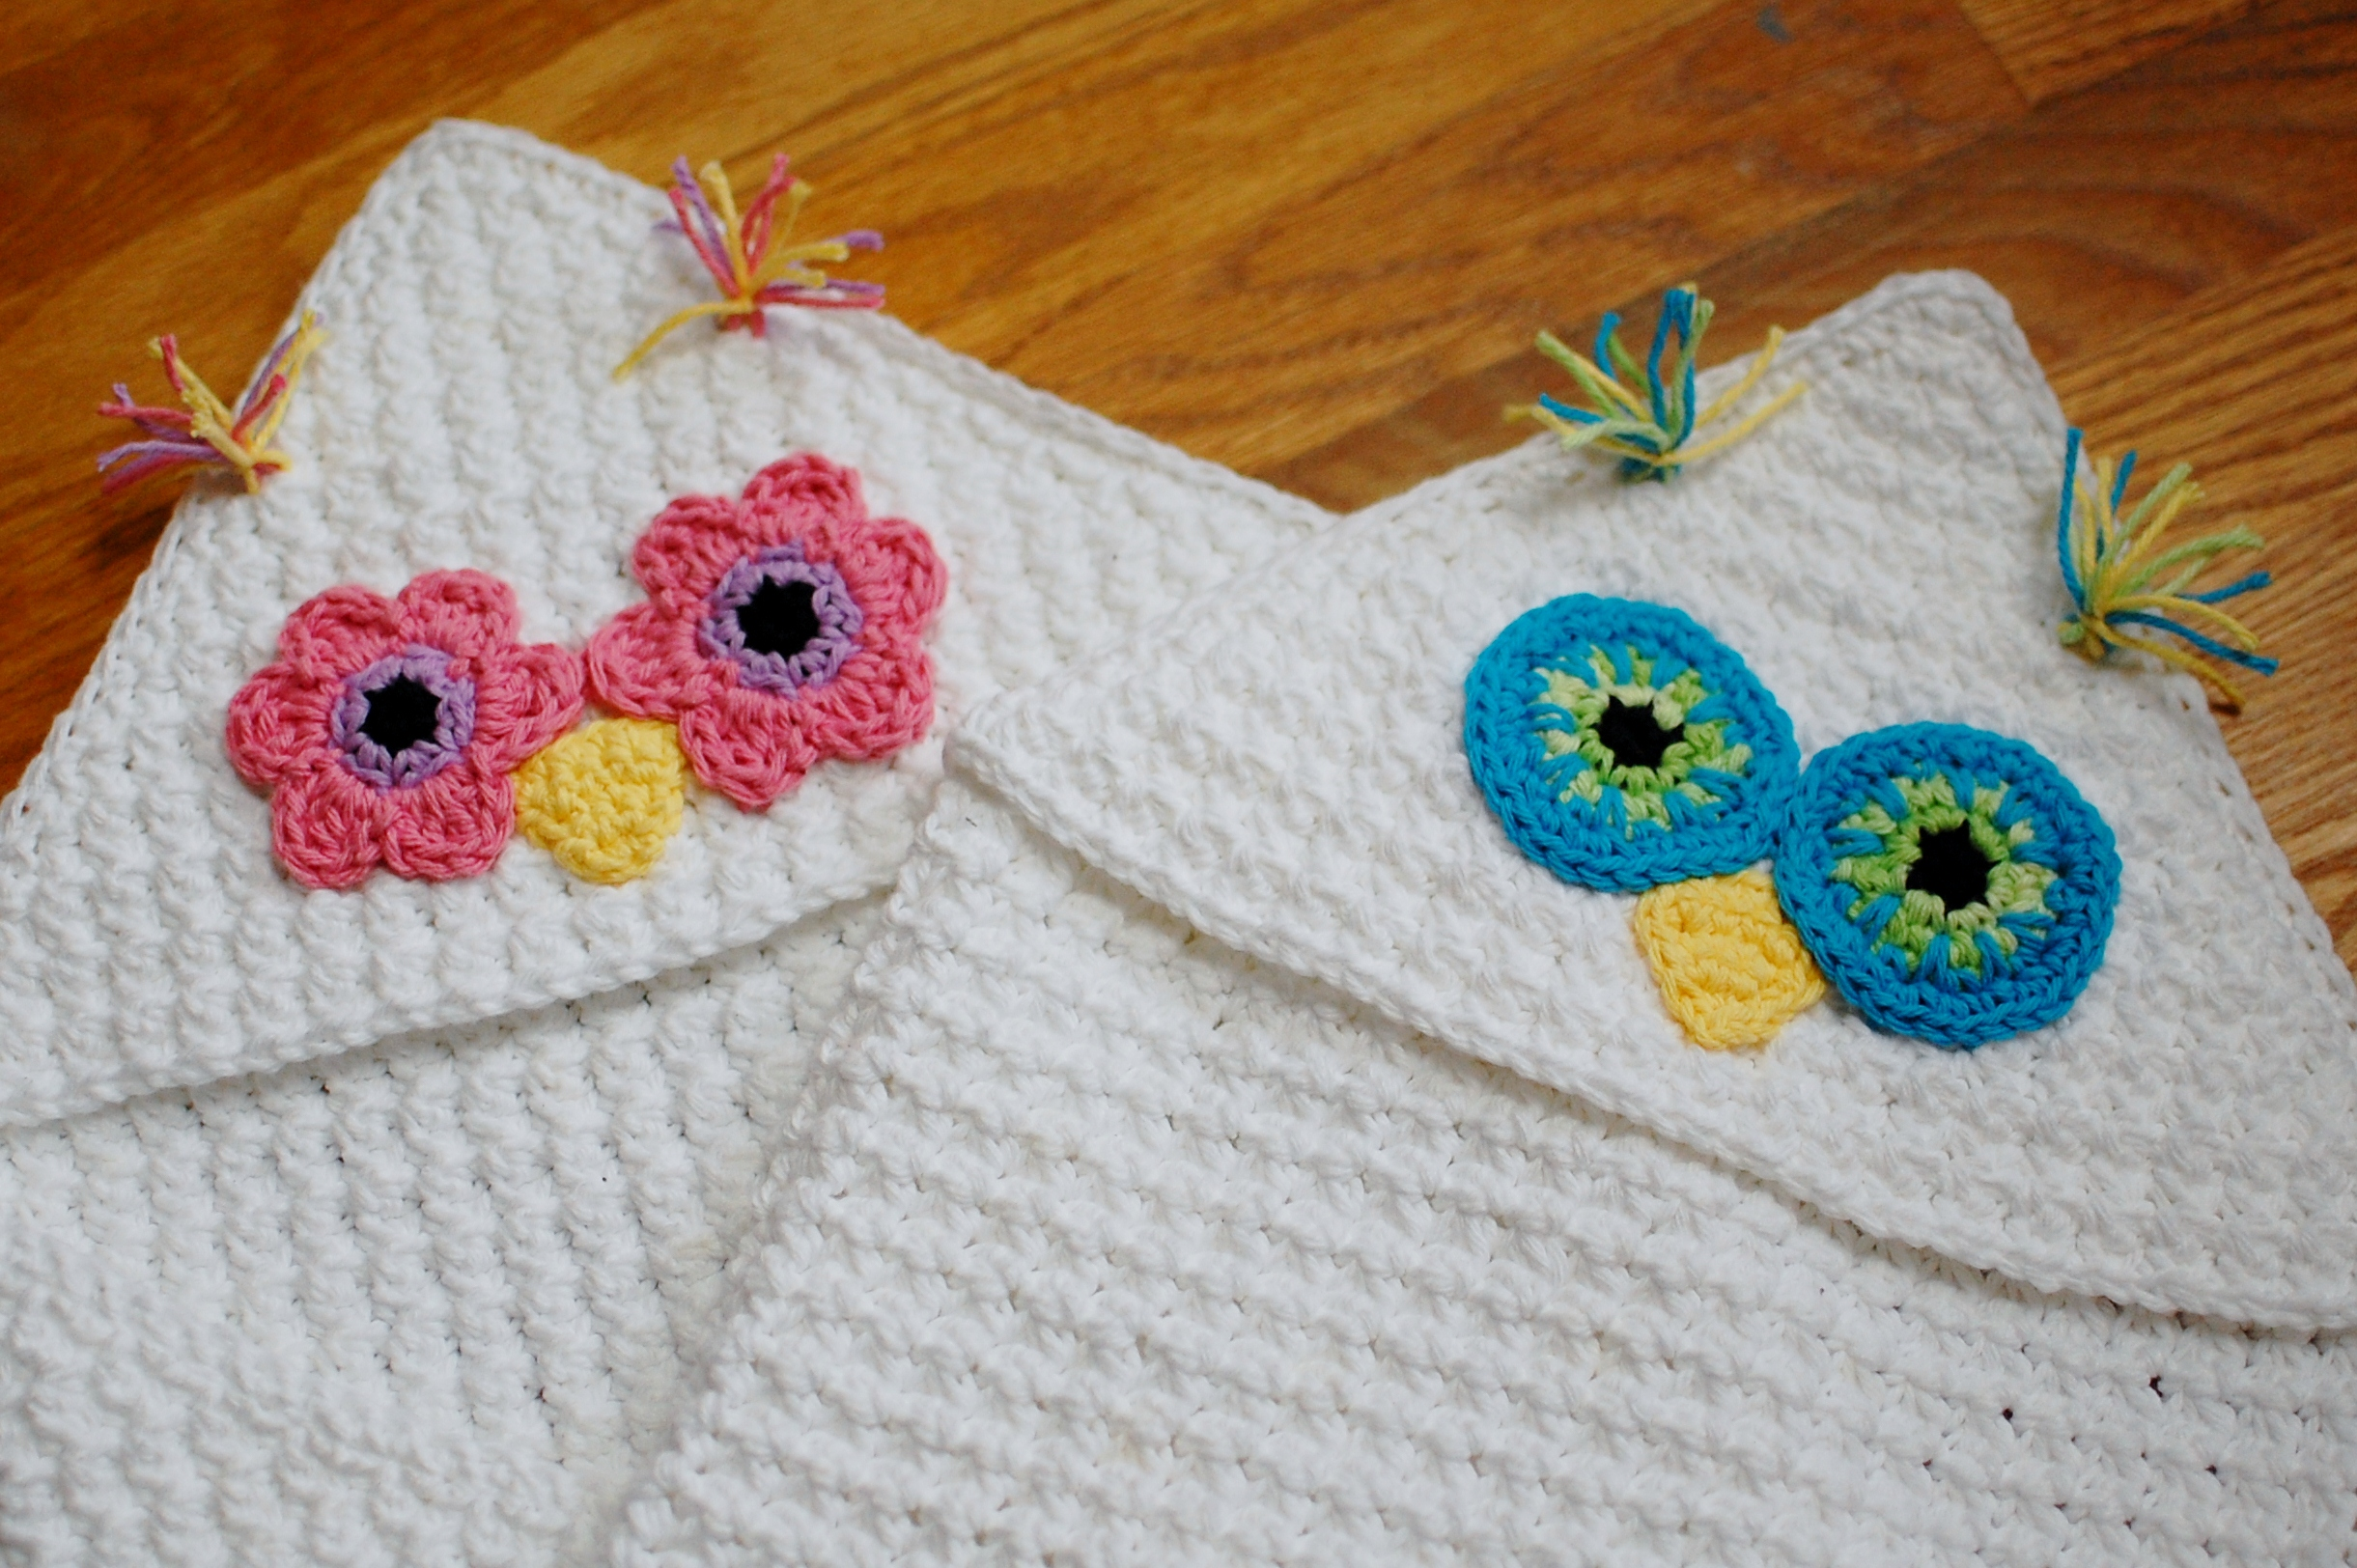 Crochet Owl Baby Blanket : Crochet Pattern - Owl Hooded Baby Towel (also makes a great hooded ...